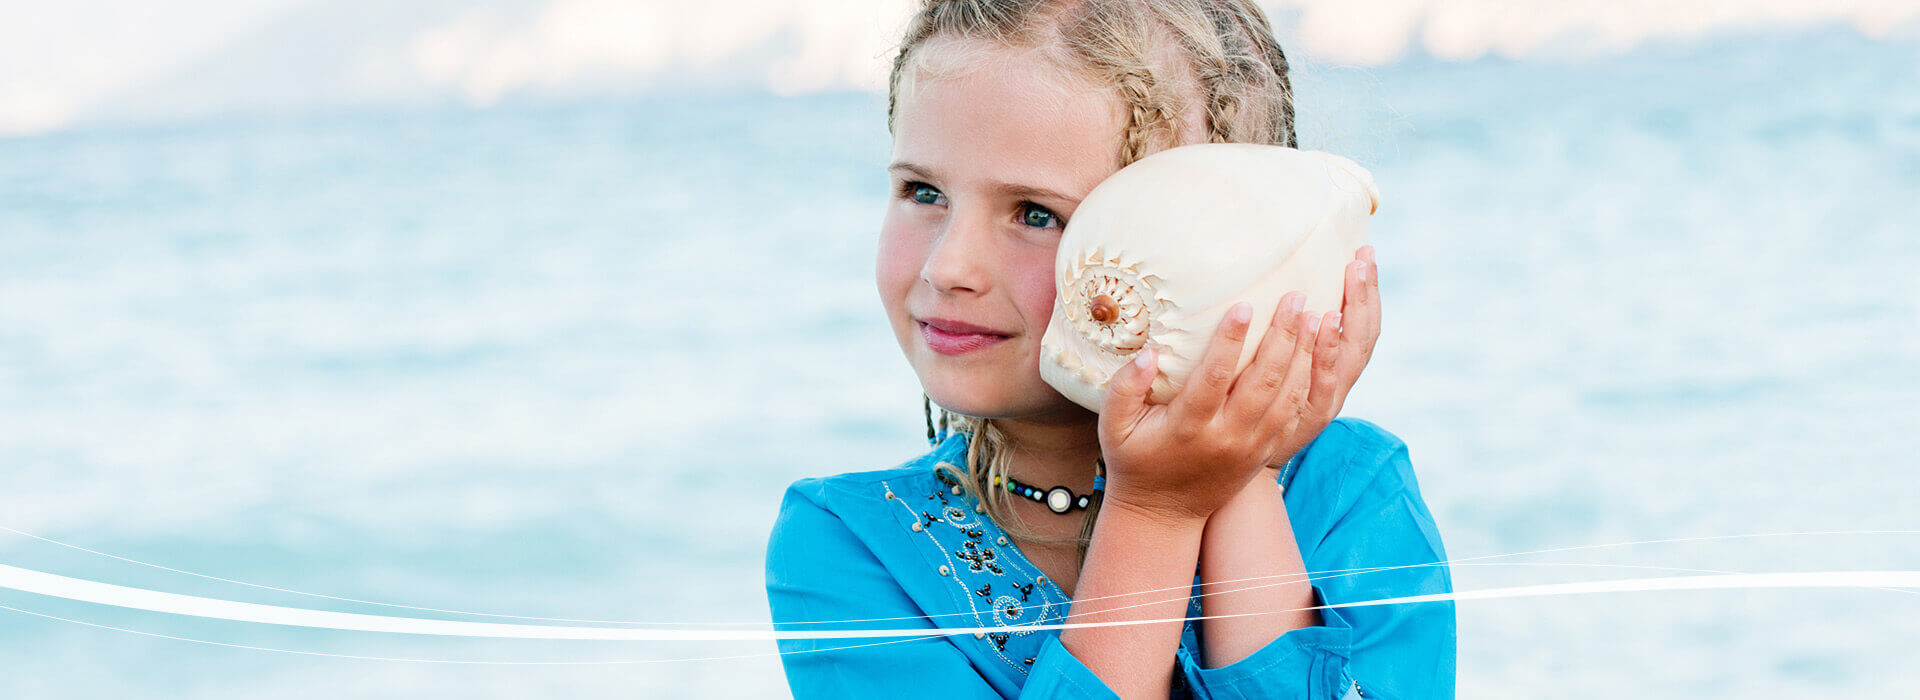 Image_Child_Conch_1920x700